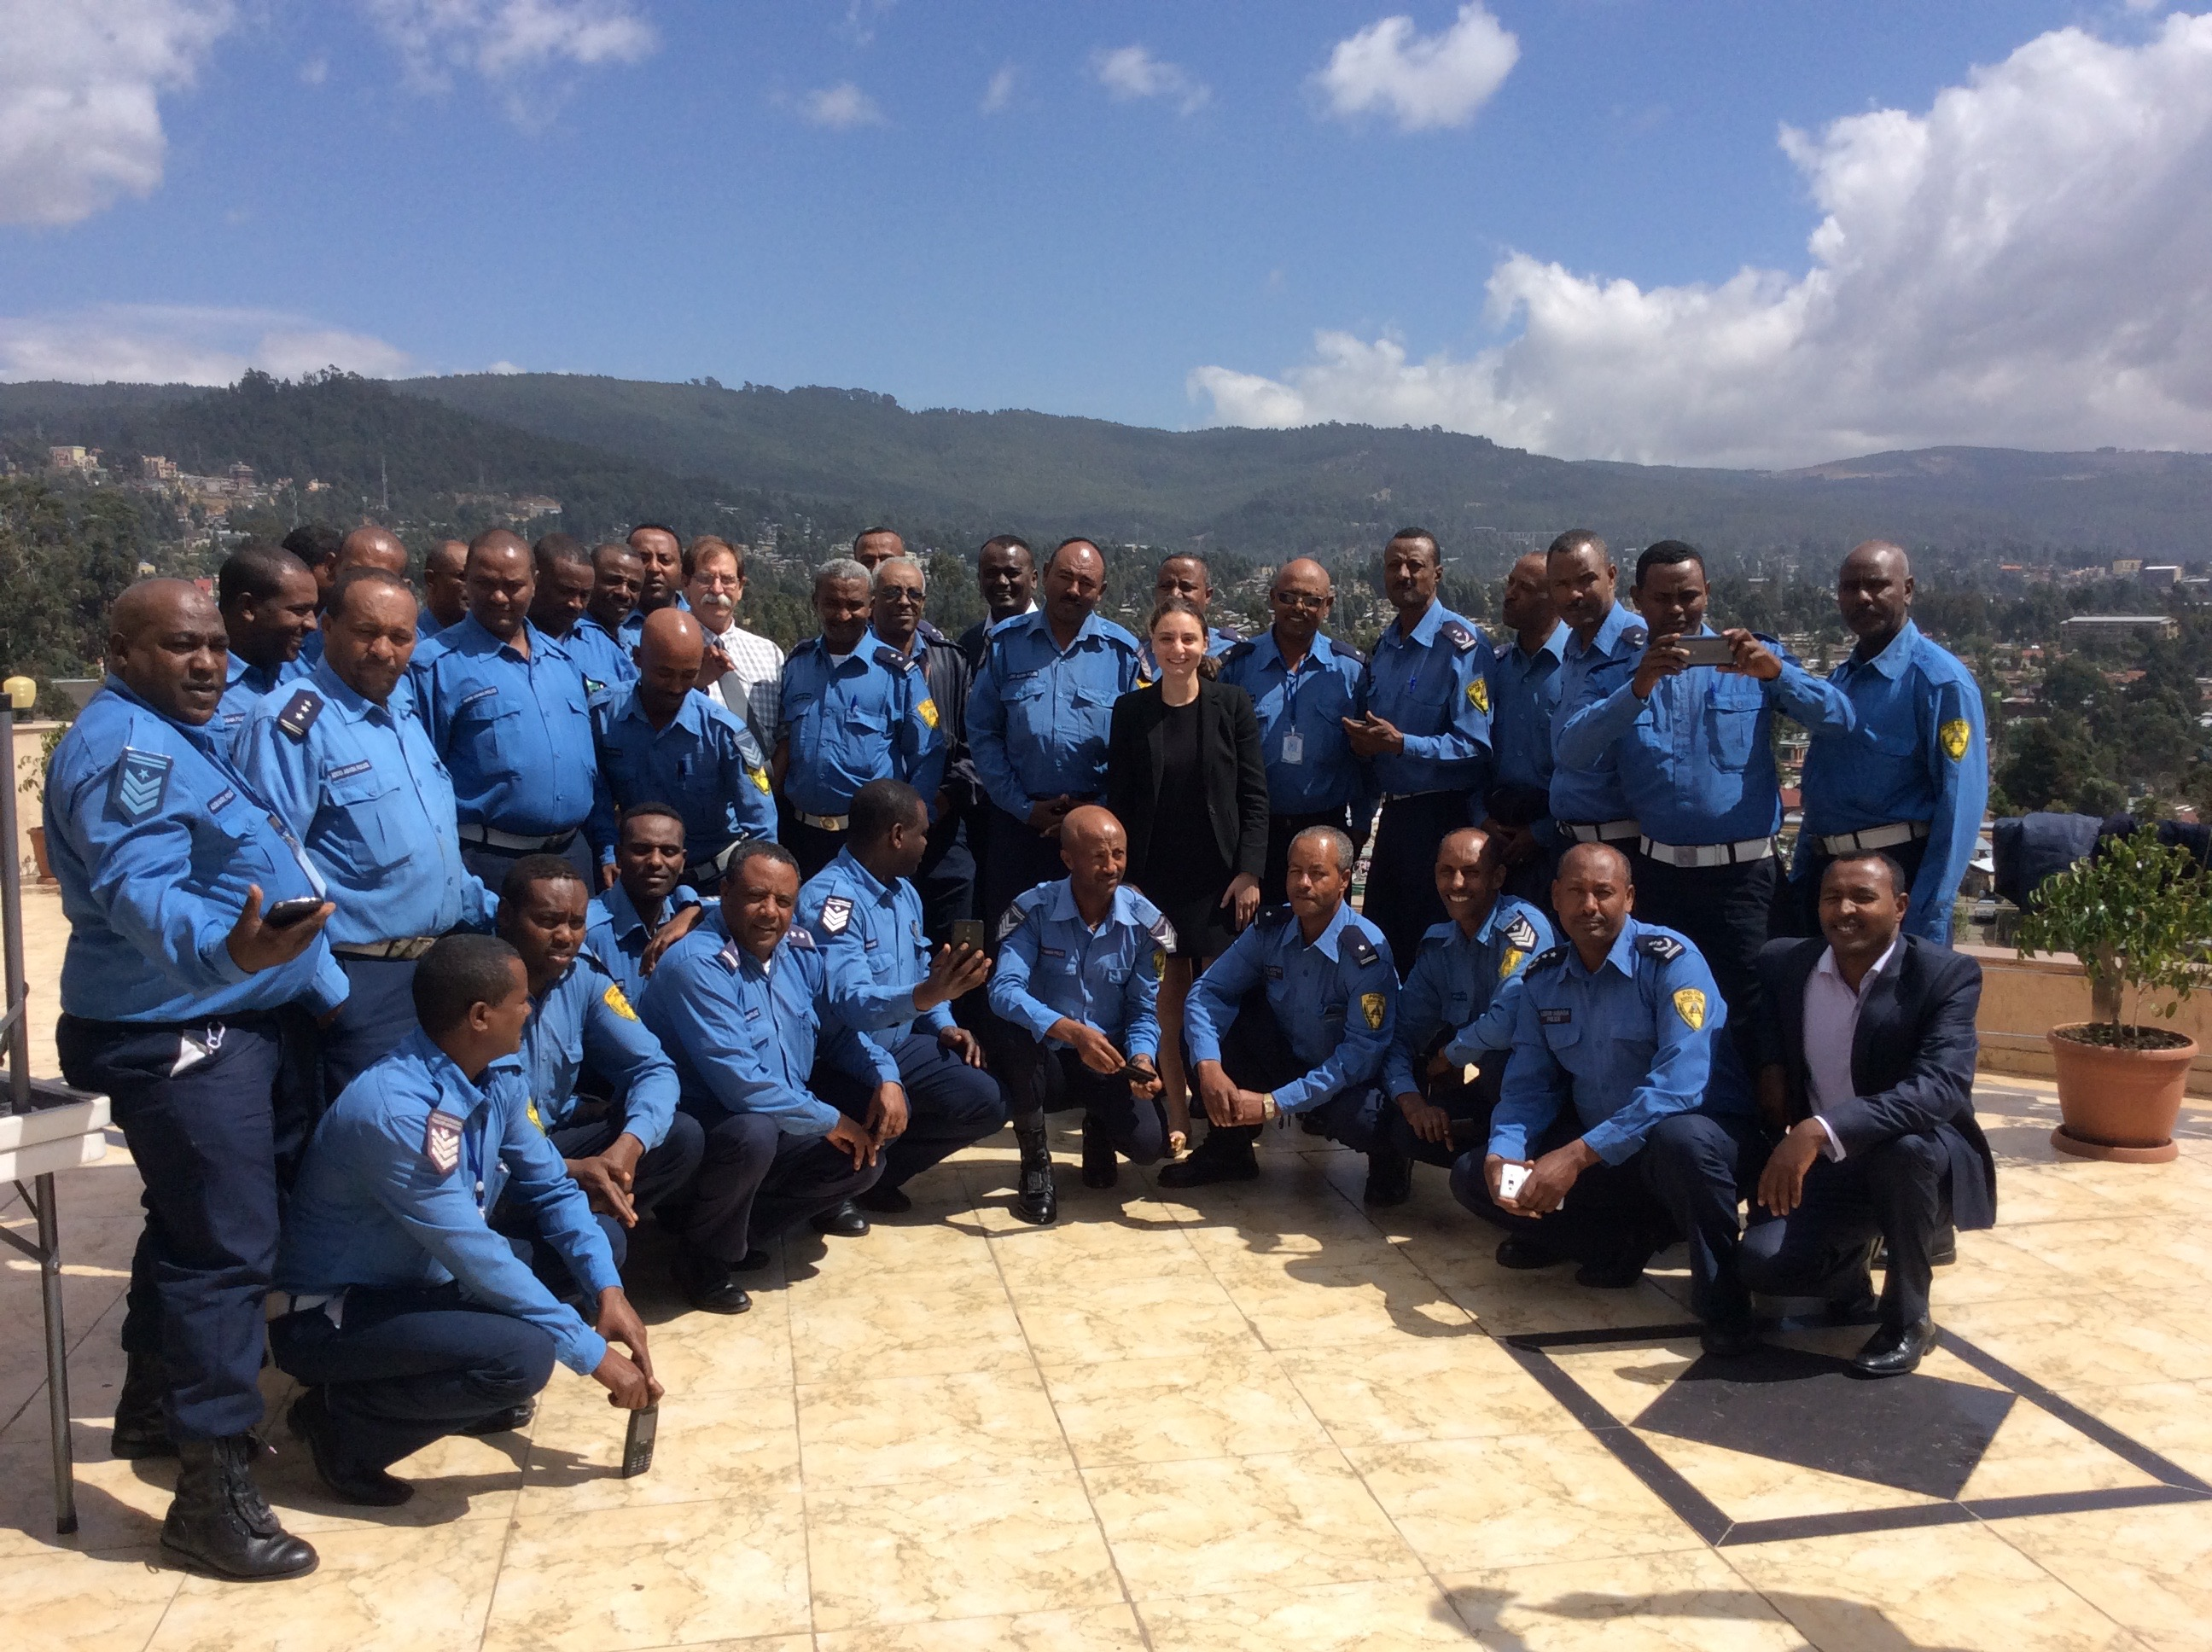 Addis Ababa Police Department